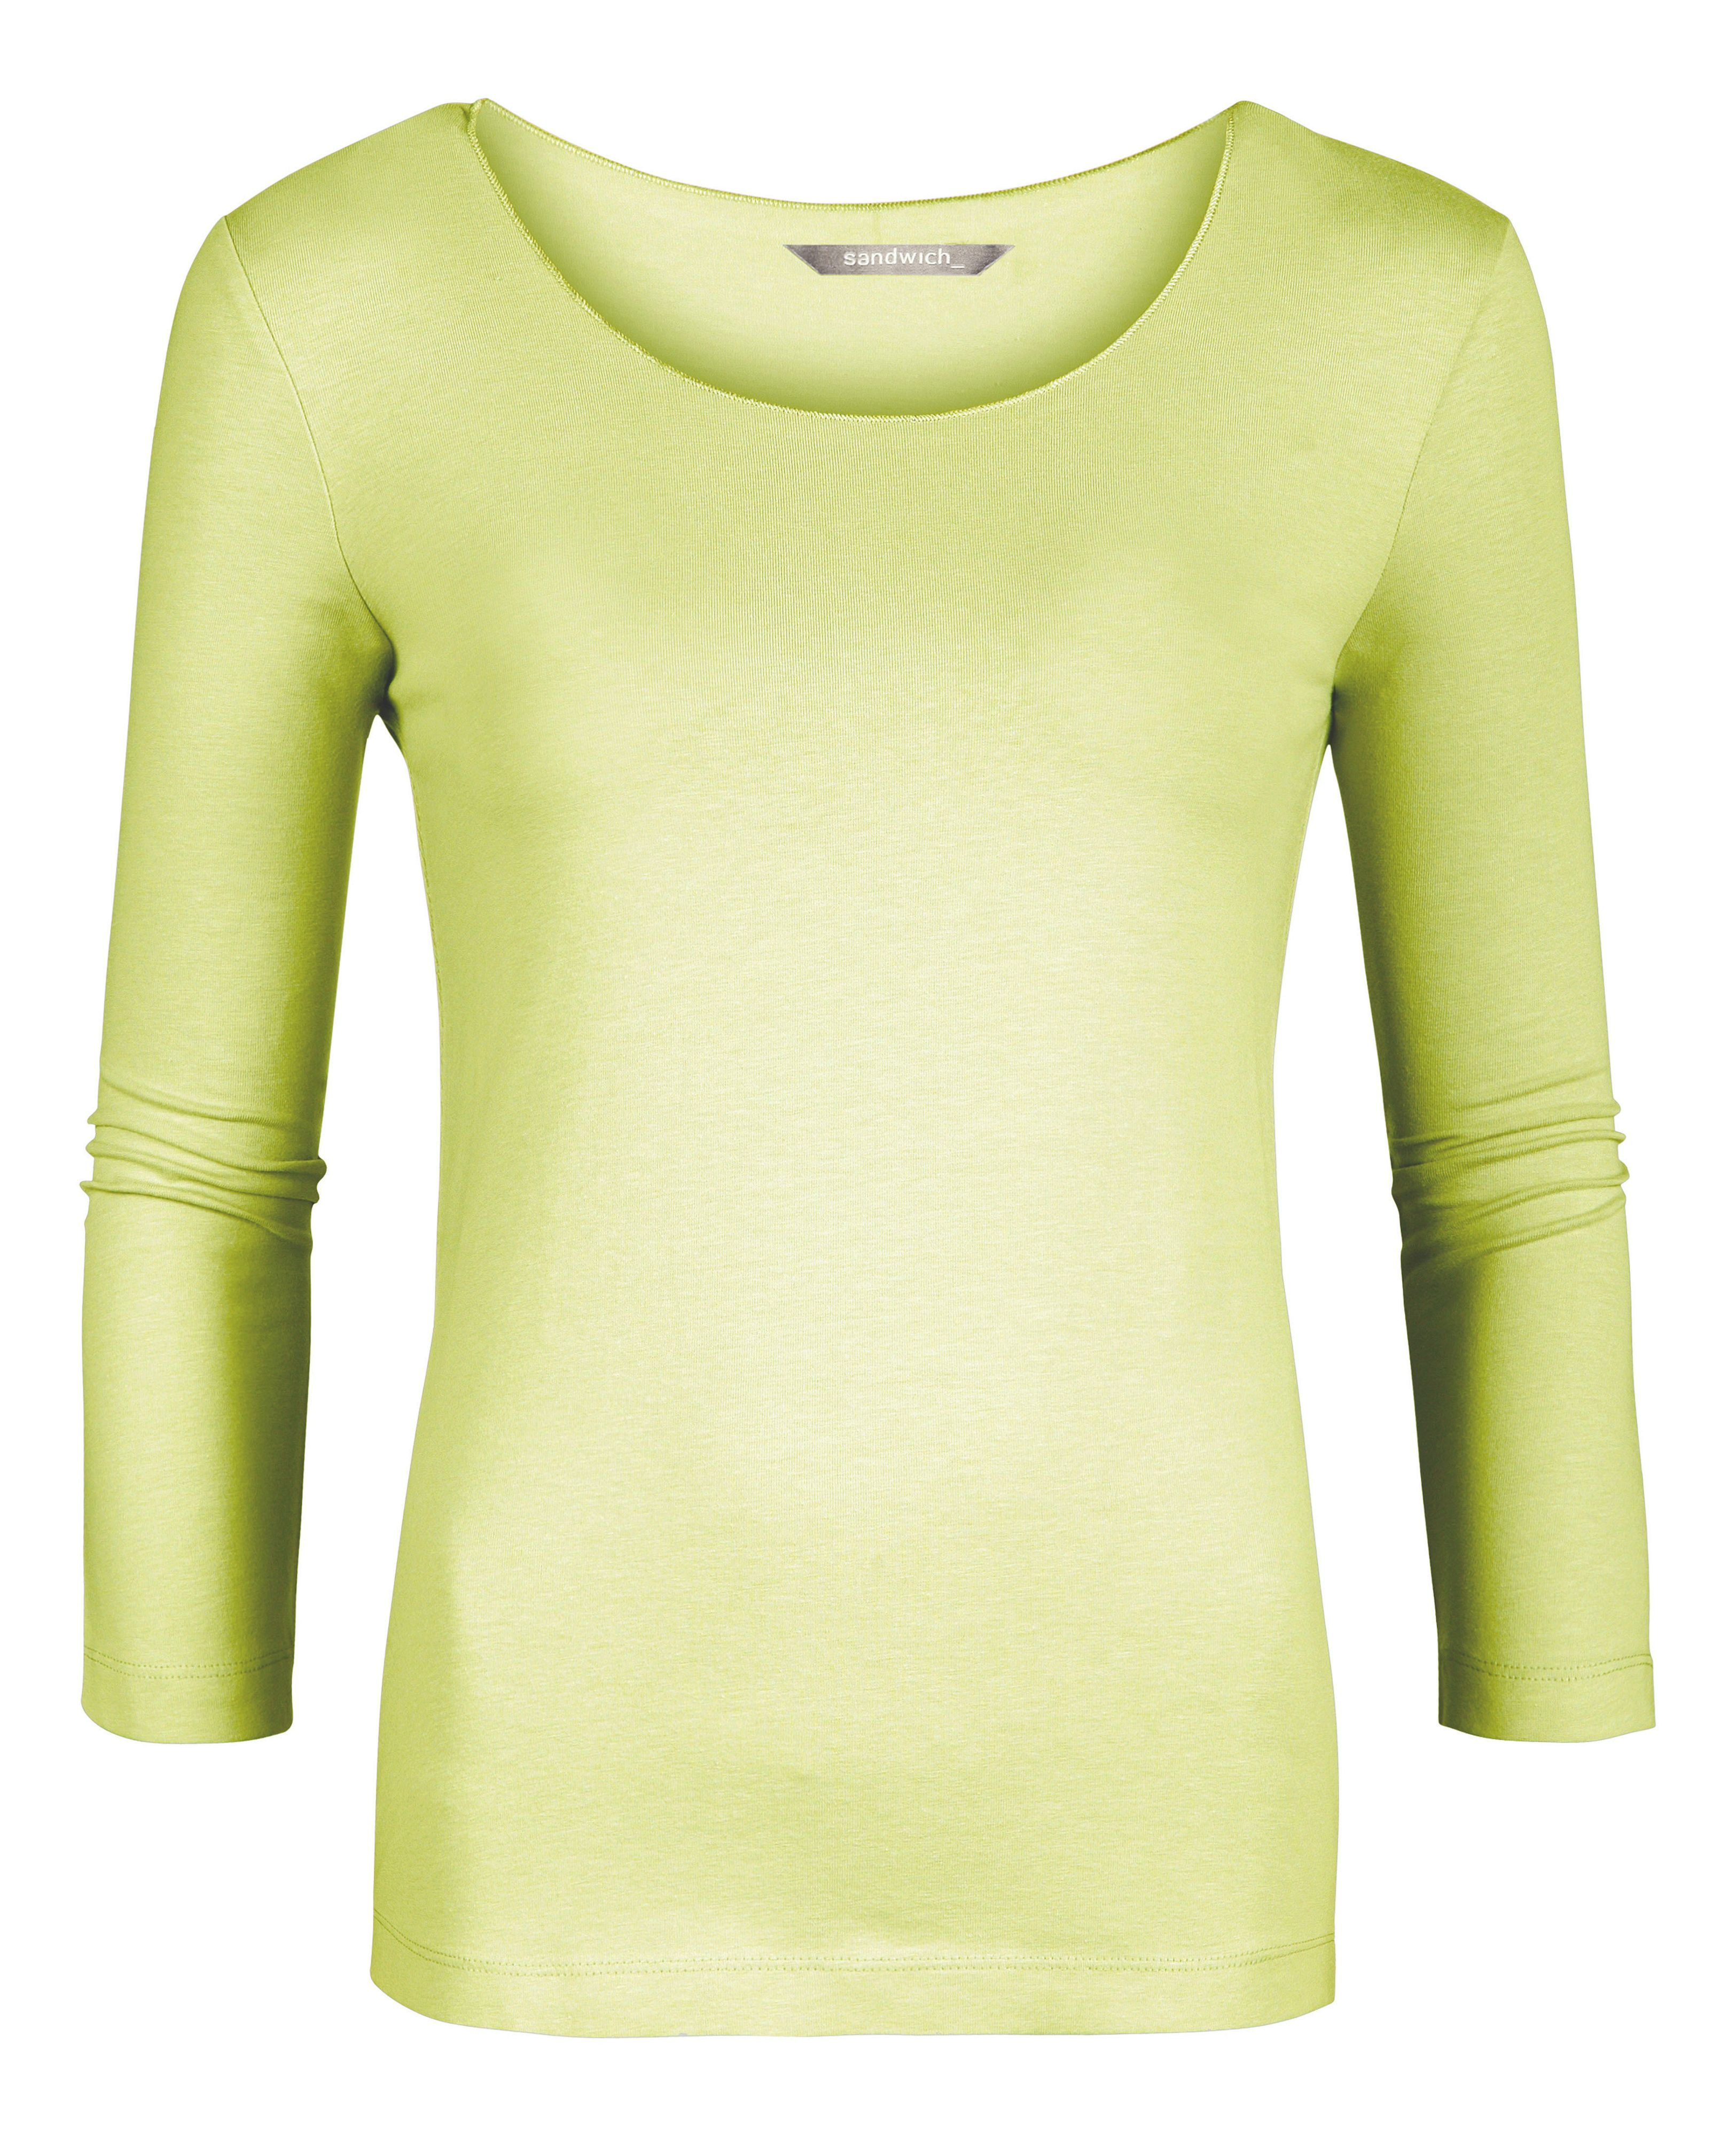 Cotton long sleeve t-shirt